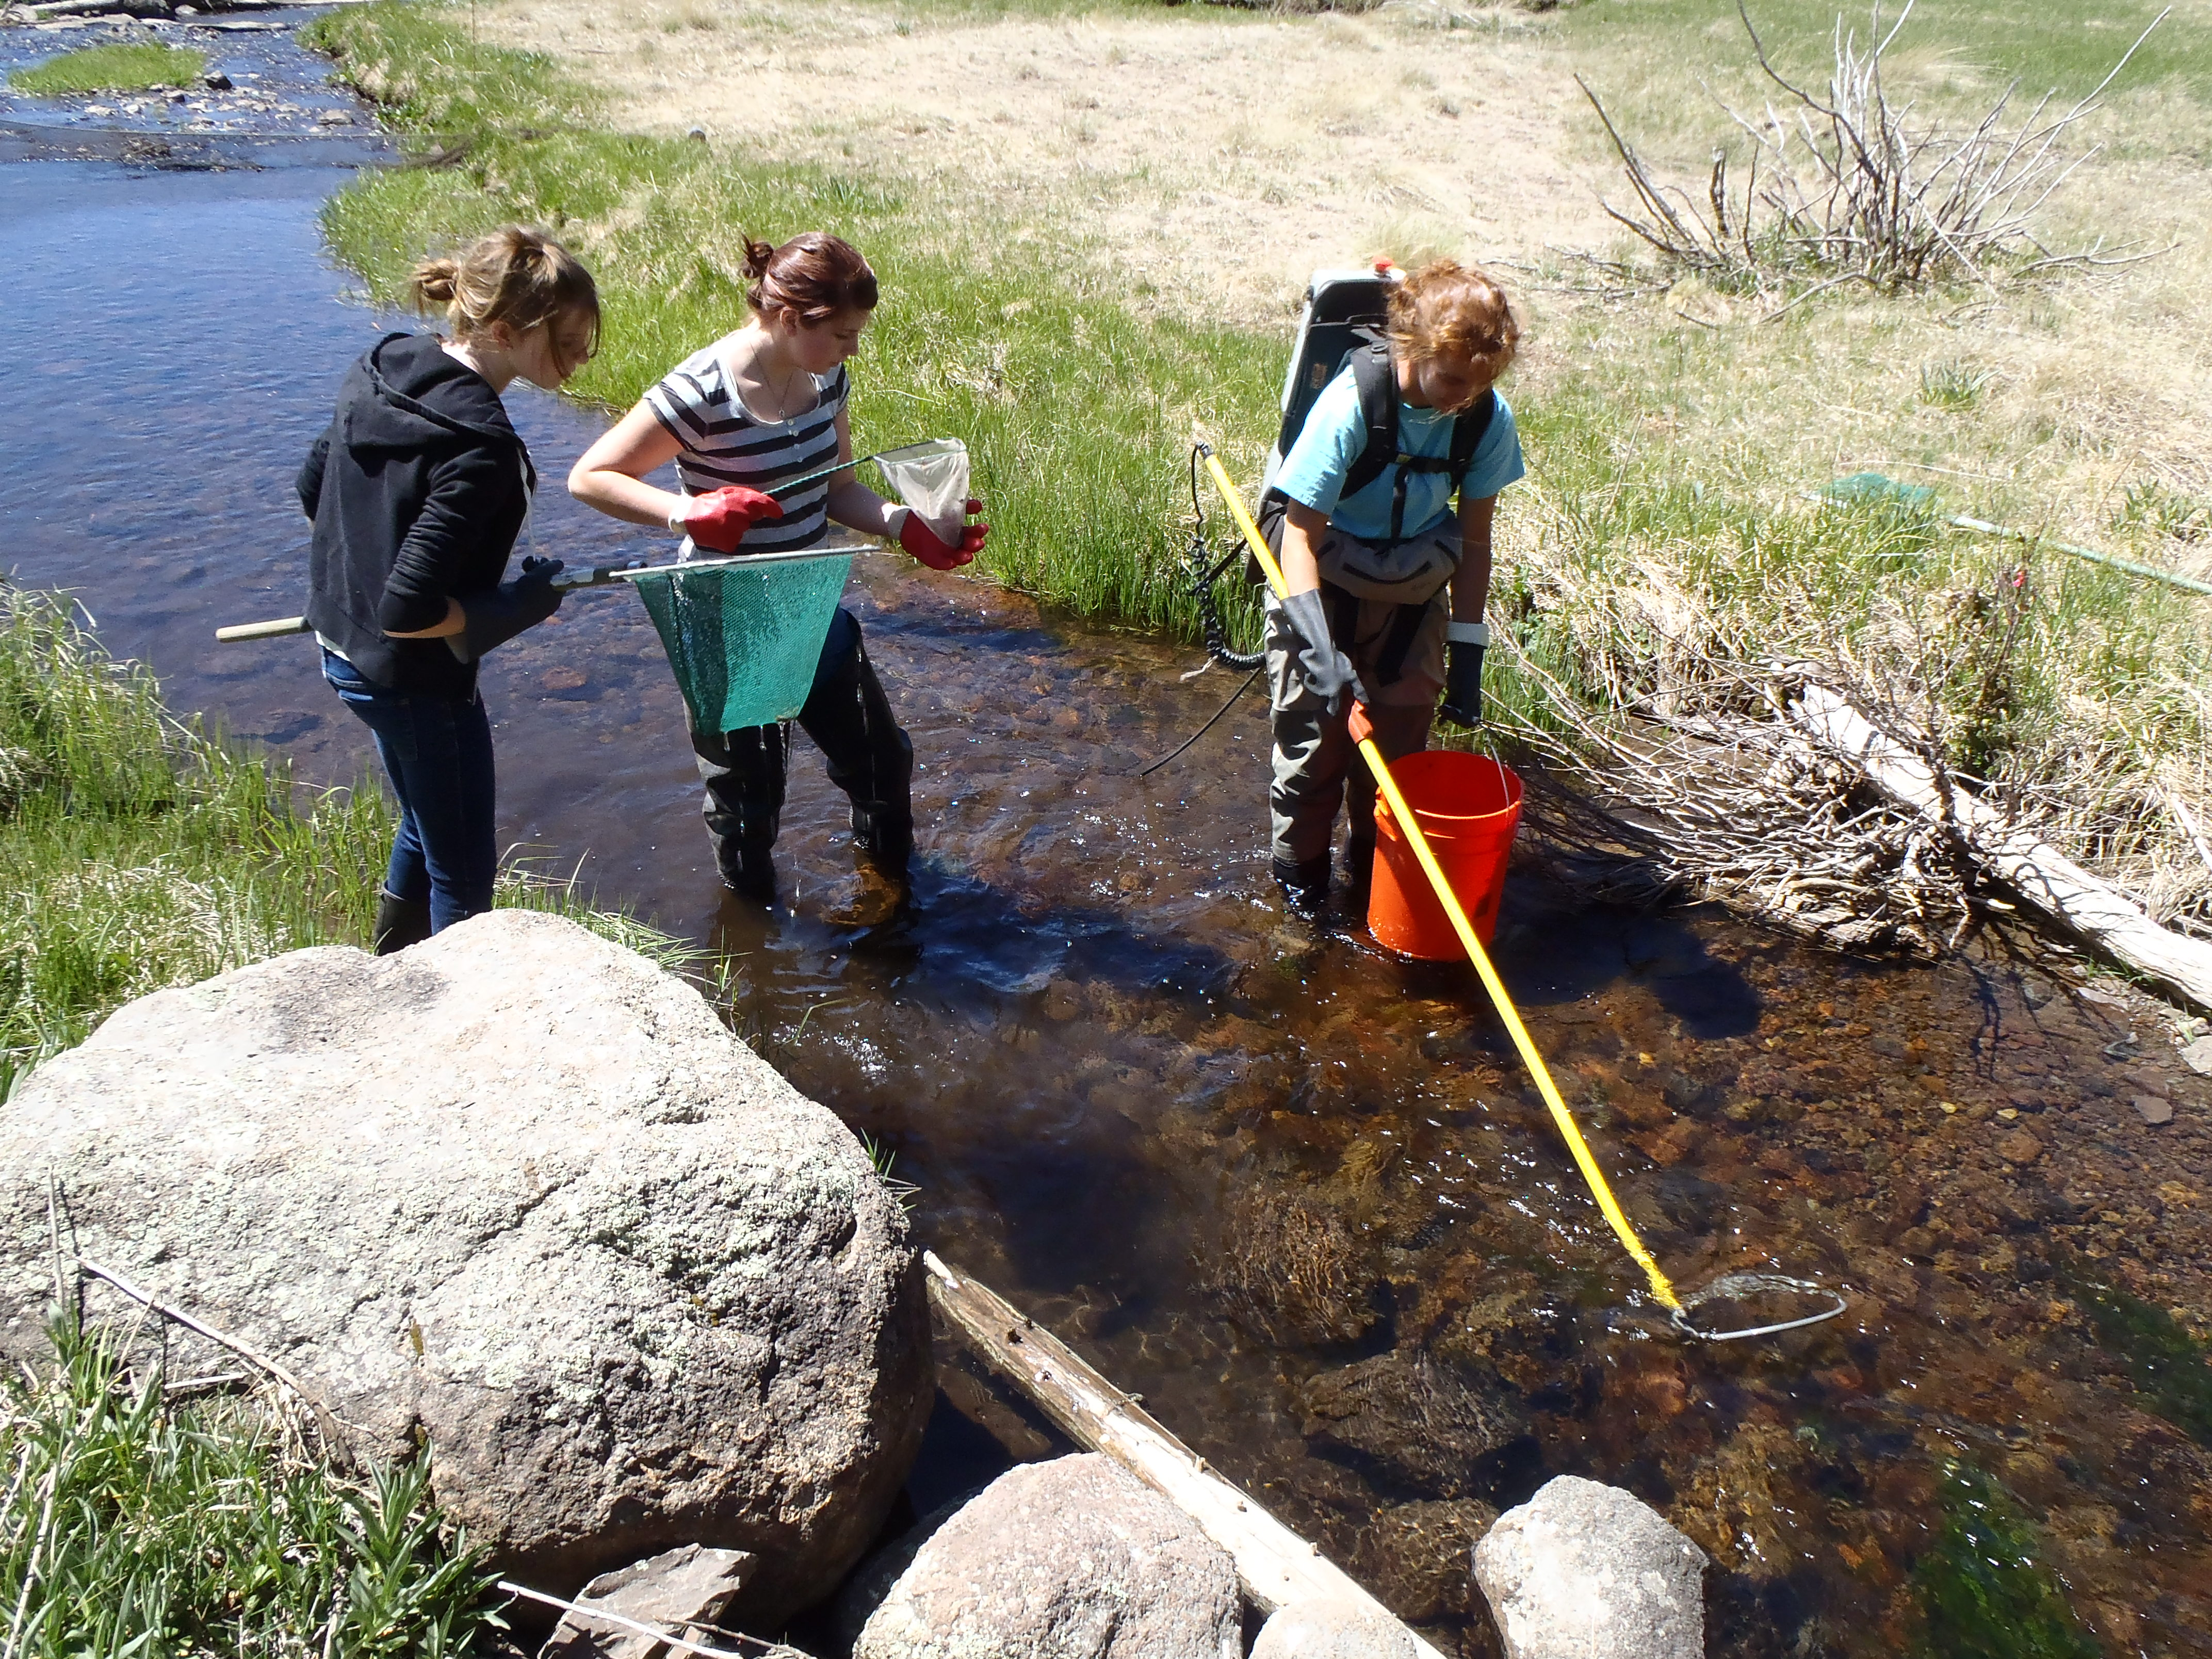 Arizona Coop students and volunteers electrofish for Apache Trout in an Arizona mountain stream.